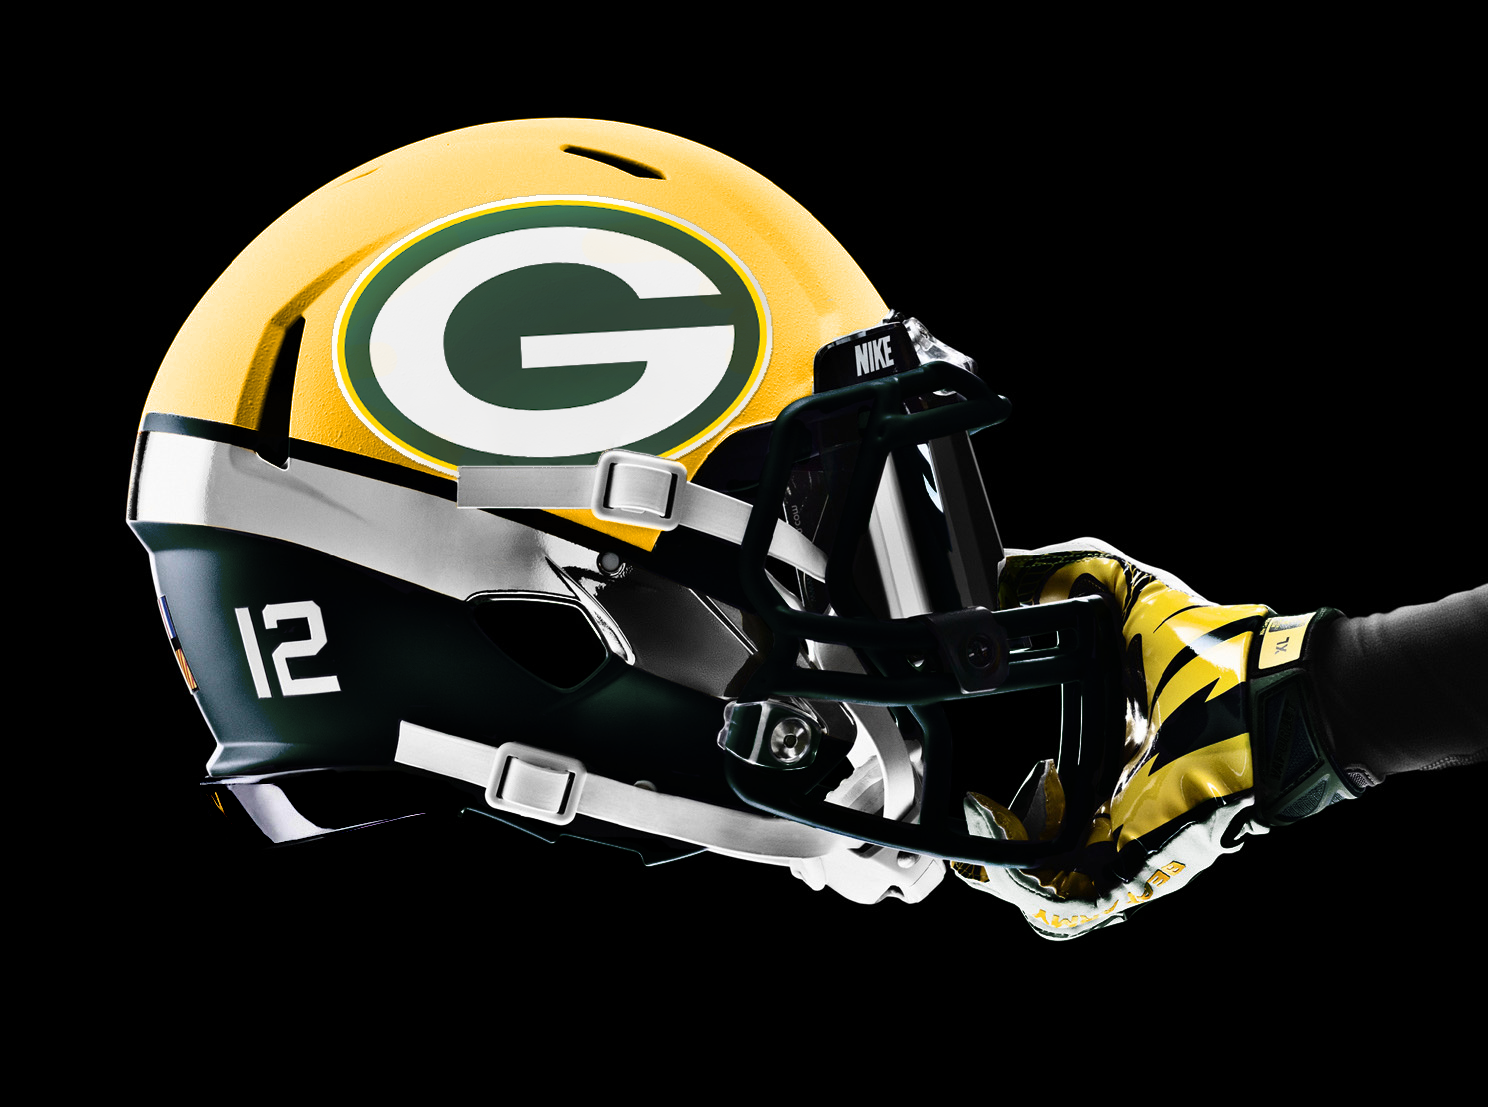 Pin By Eisforelikem On Green Bay Packers In 2020 Green Bay Packers Helmet Green Bay Packers Football Packers Football